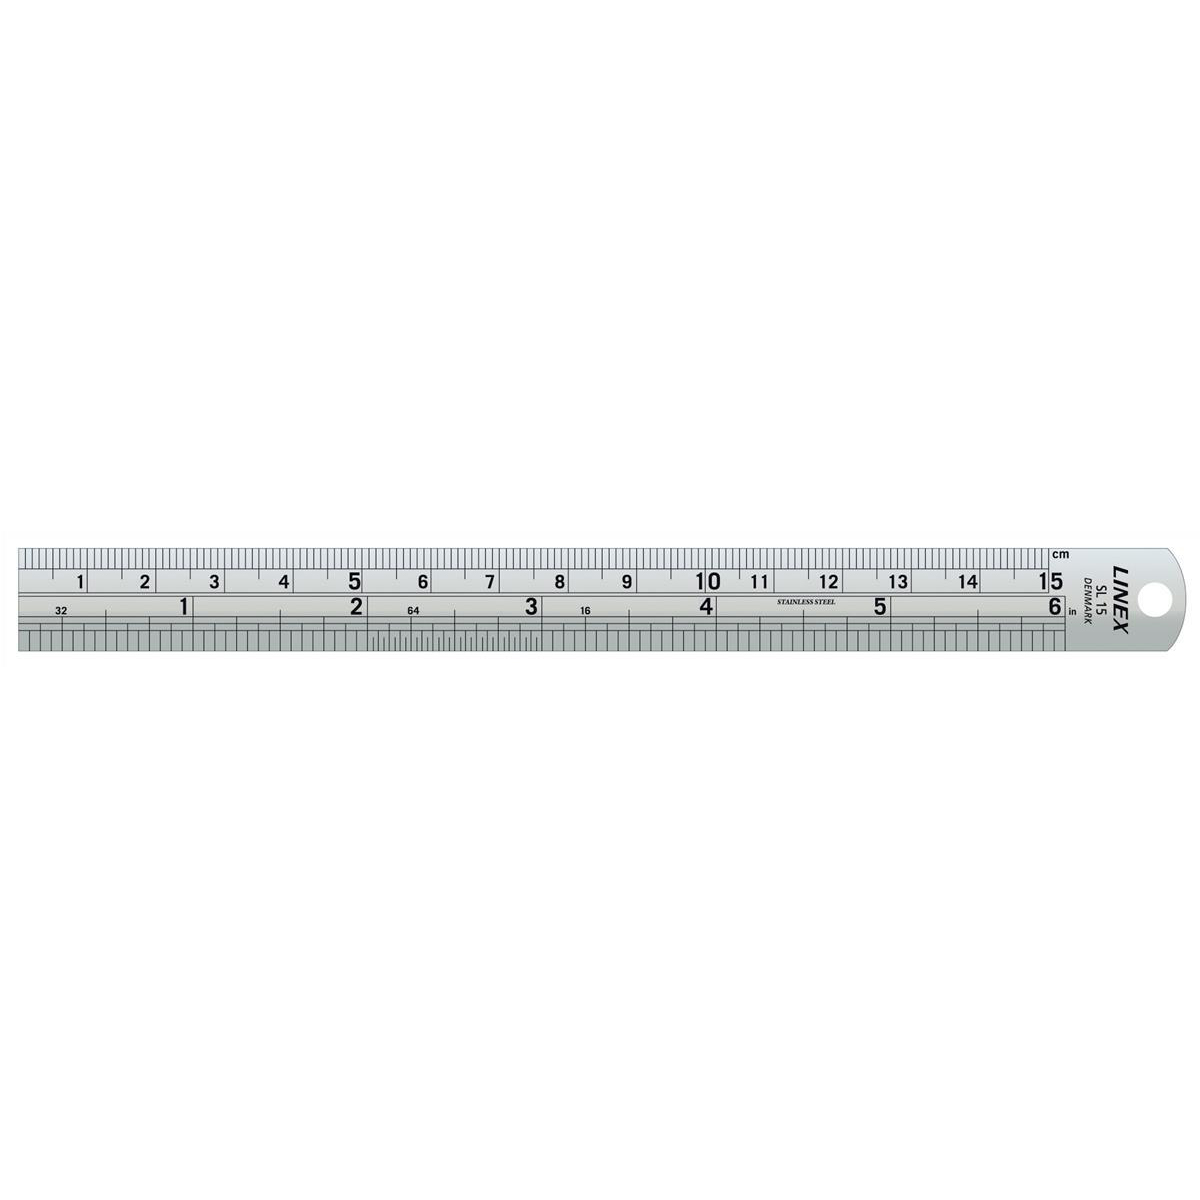 Rulers Linex Ruler Stainless Steel Imperial and Metric with Conversion Table 150mm Silver Ref LXESL15